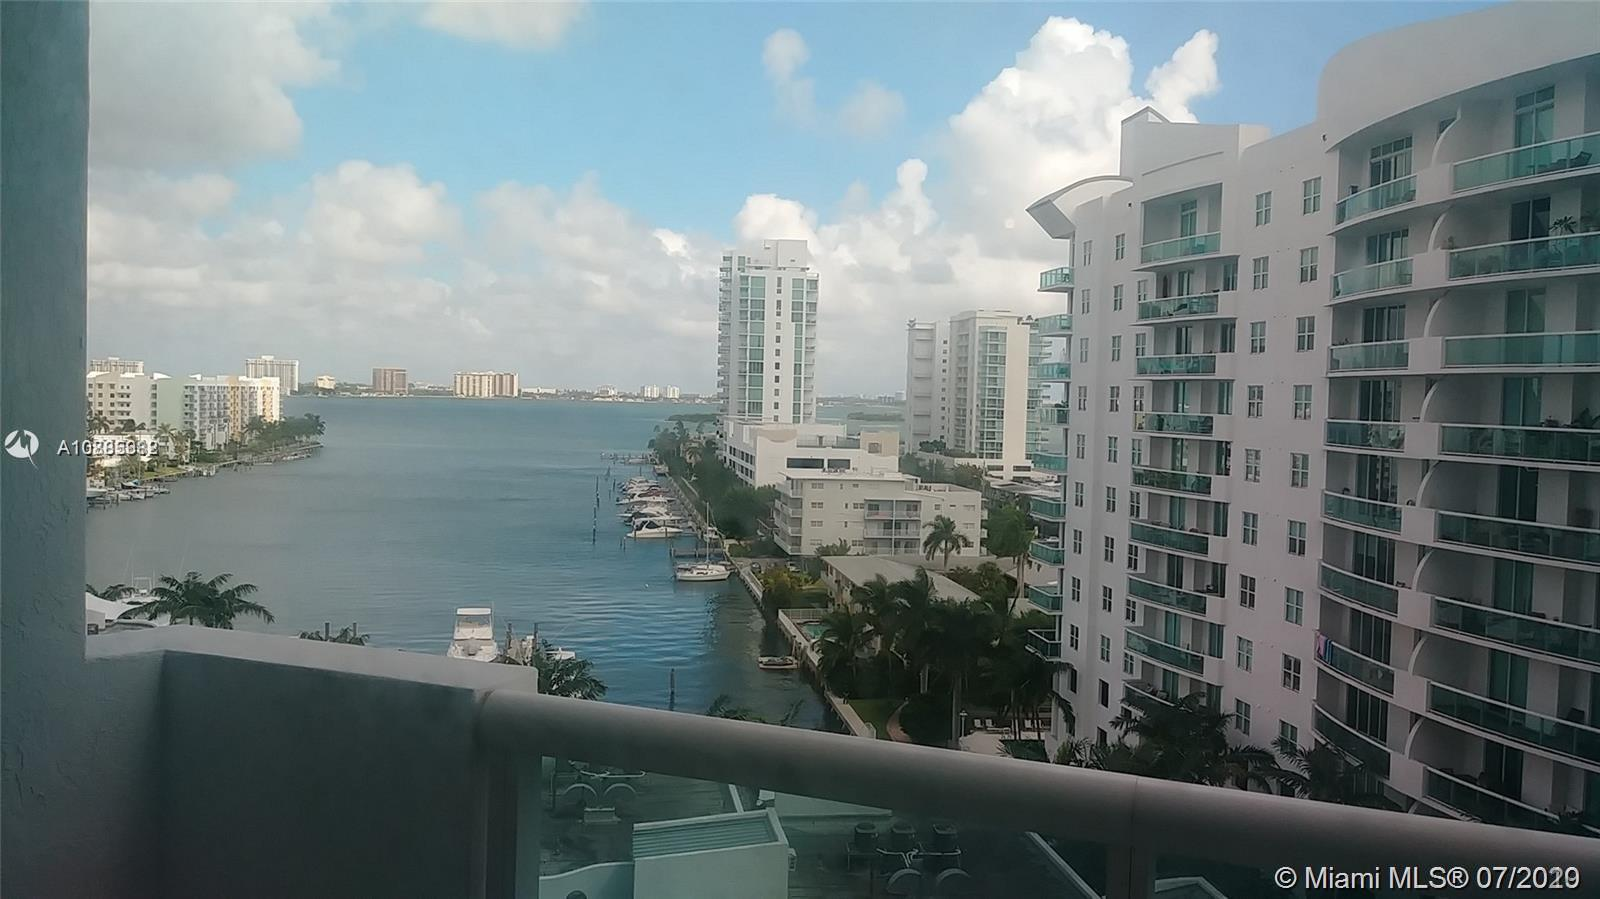 Assessment paid in full! 2bd 2BA Unit at luxurious 360 Condo in North Bay Village with direct bay views. Close to prestigious Bal Harbour shops and restaurants, South Beach, Downtown Miami, Brickell. This spacious unit has direct views of the bay from every room. It includes: 1 assigned parking spaces, extra large balcony, ss appliances, granite tops, state of the art fitness facility, saunas, poolside cabanas, recreational clubhouse, and full service lobby. Included in HOA: cable, internet, sewer, trash, building insurance, and unlimited free valet for residents and guests. Unit tenant occupied with a great tenant. Easy to show! Text Anthony Santiago.